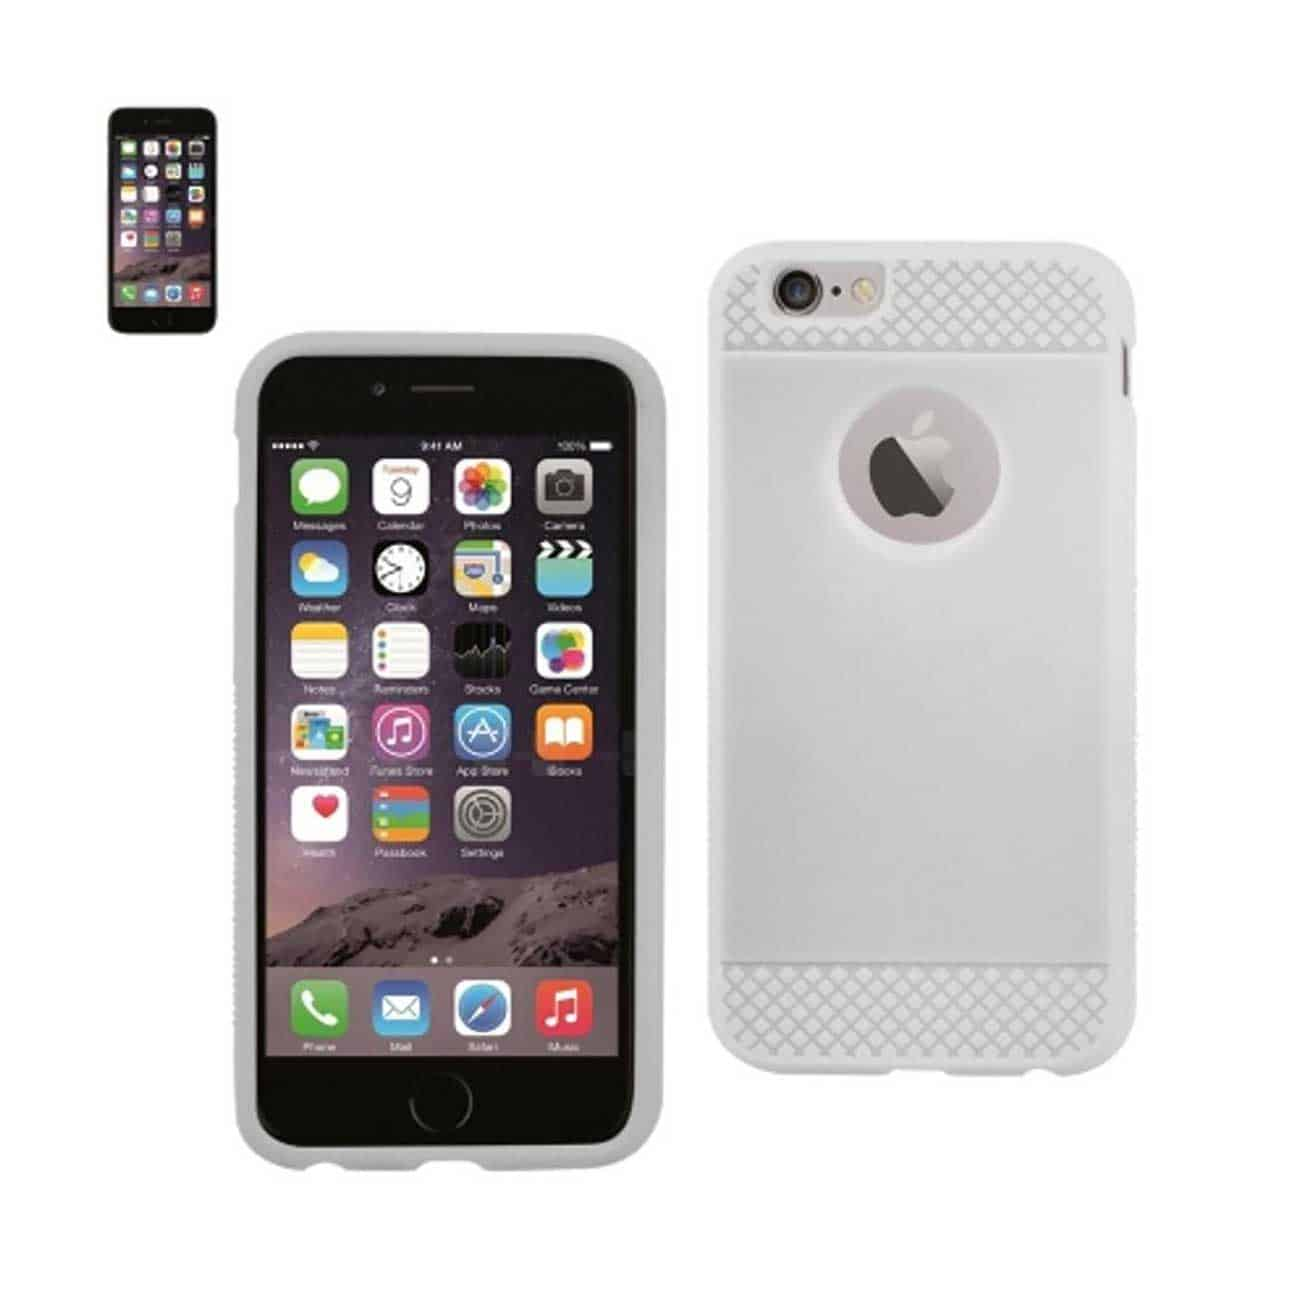 IPHONE 6 TPU RIDGES GEL CASE IN WHITE